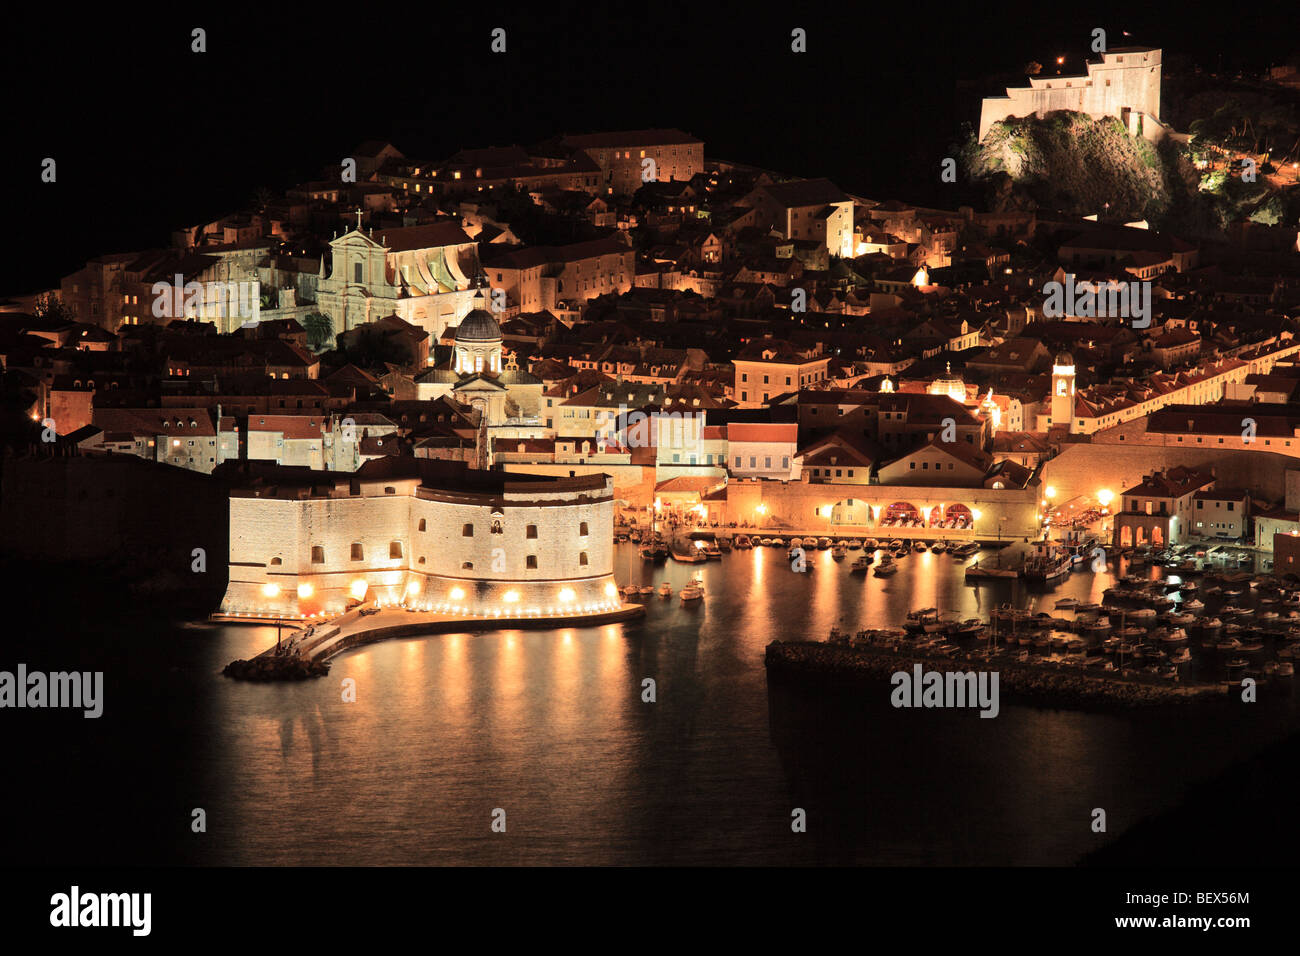 A panorama of an old city of Dubrovnik by night, Croatia - Stock Image